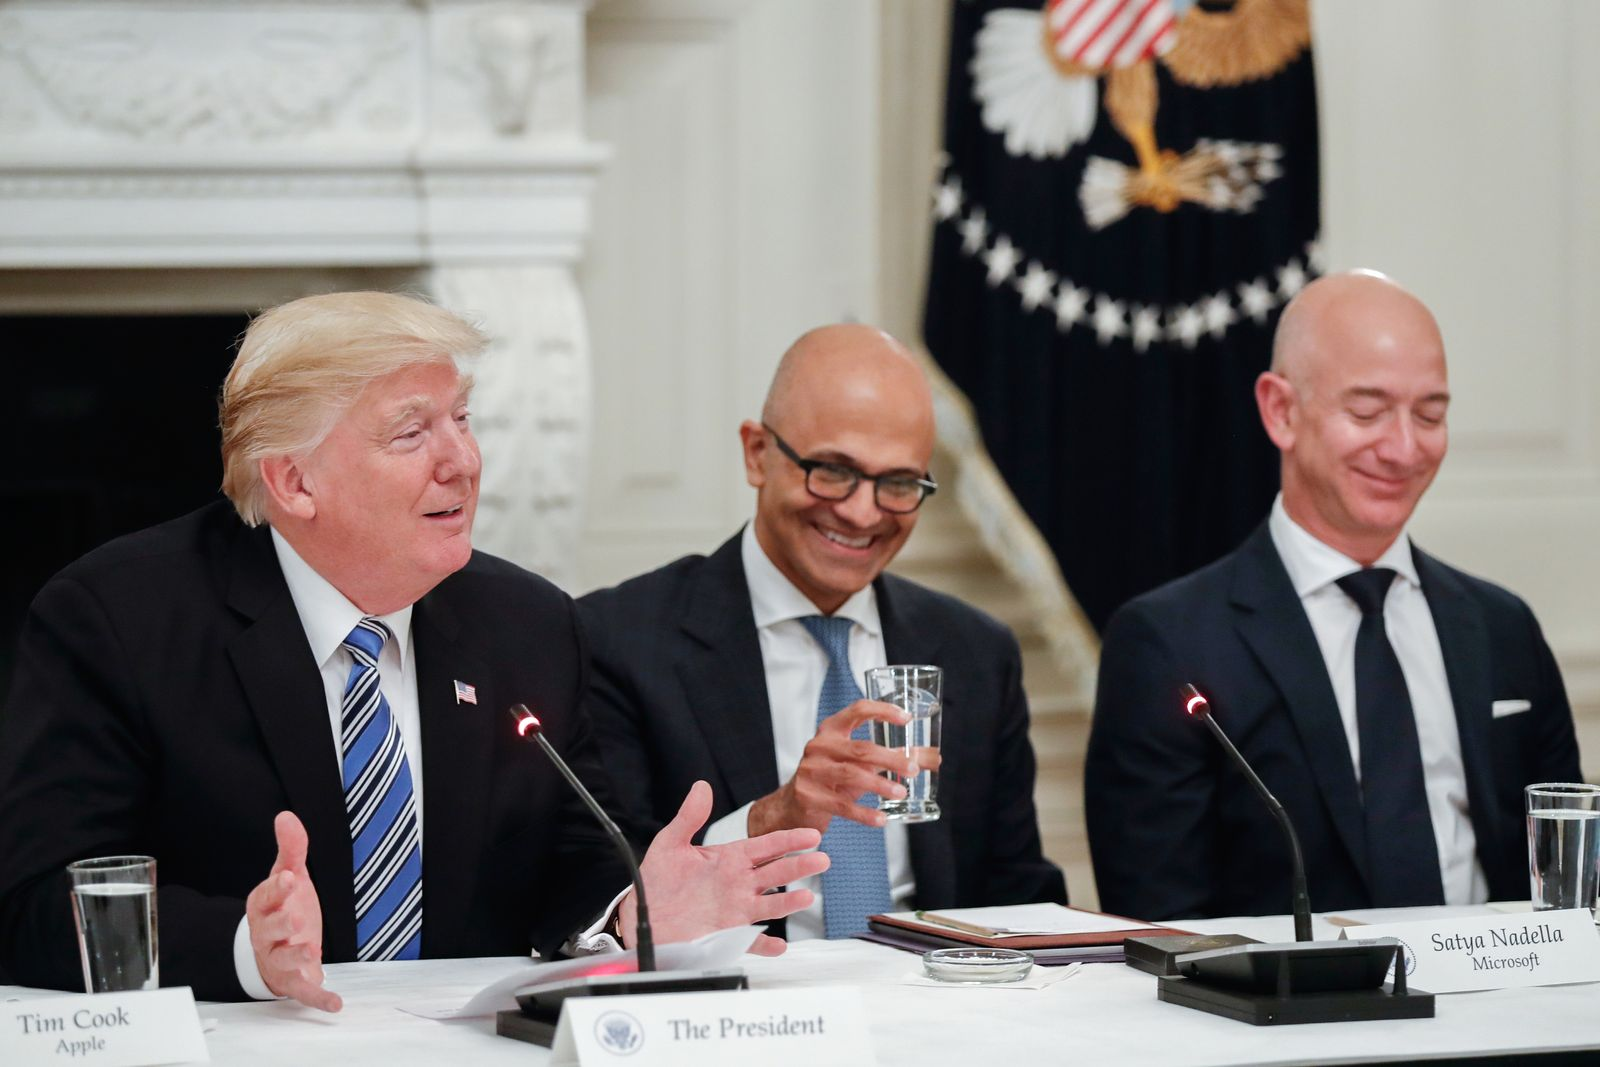 Donald Trump/ Microsoft CEO Satya Nadella/ Amazon CEO Jeff Bezos